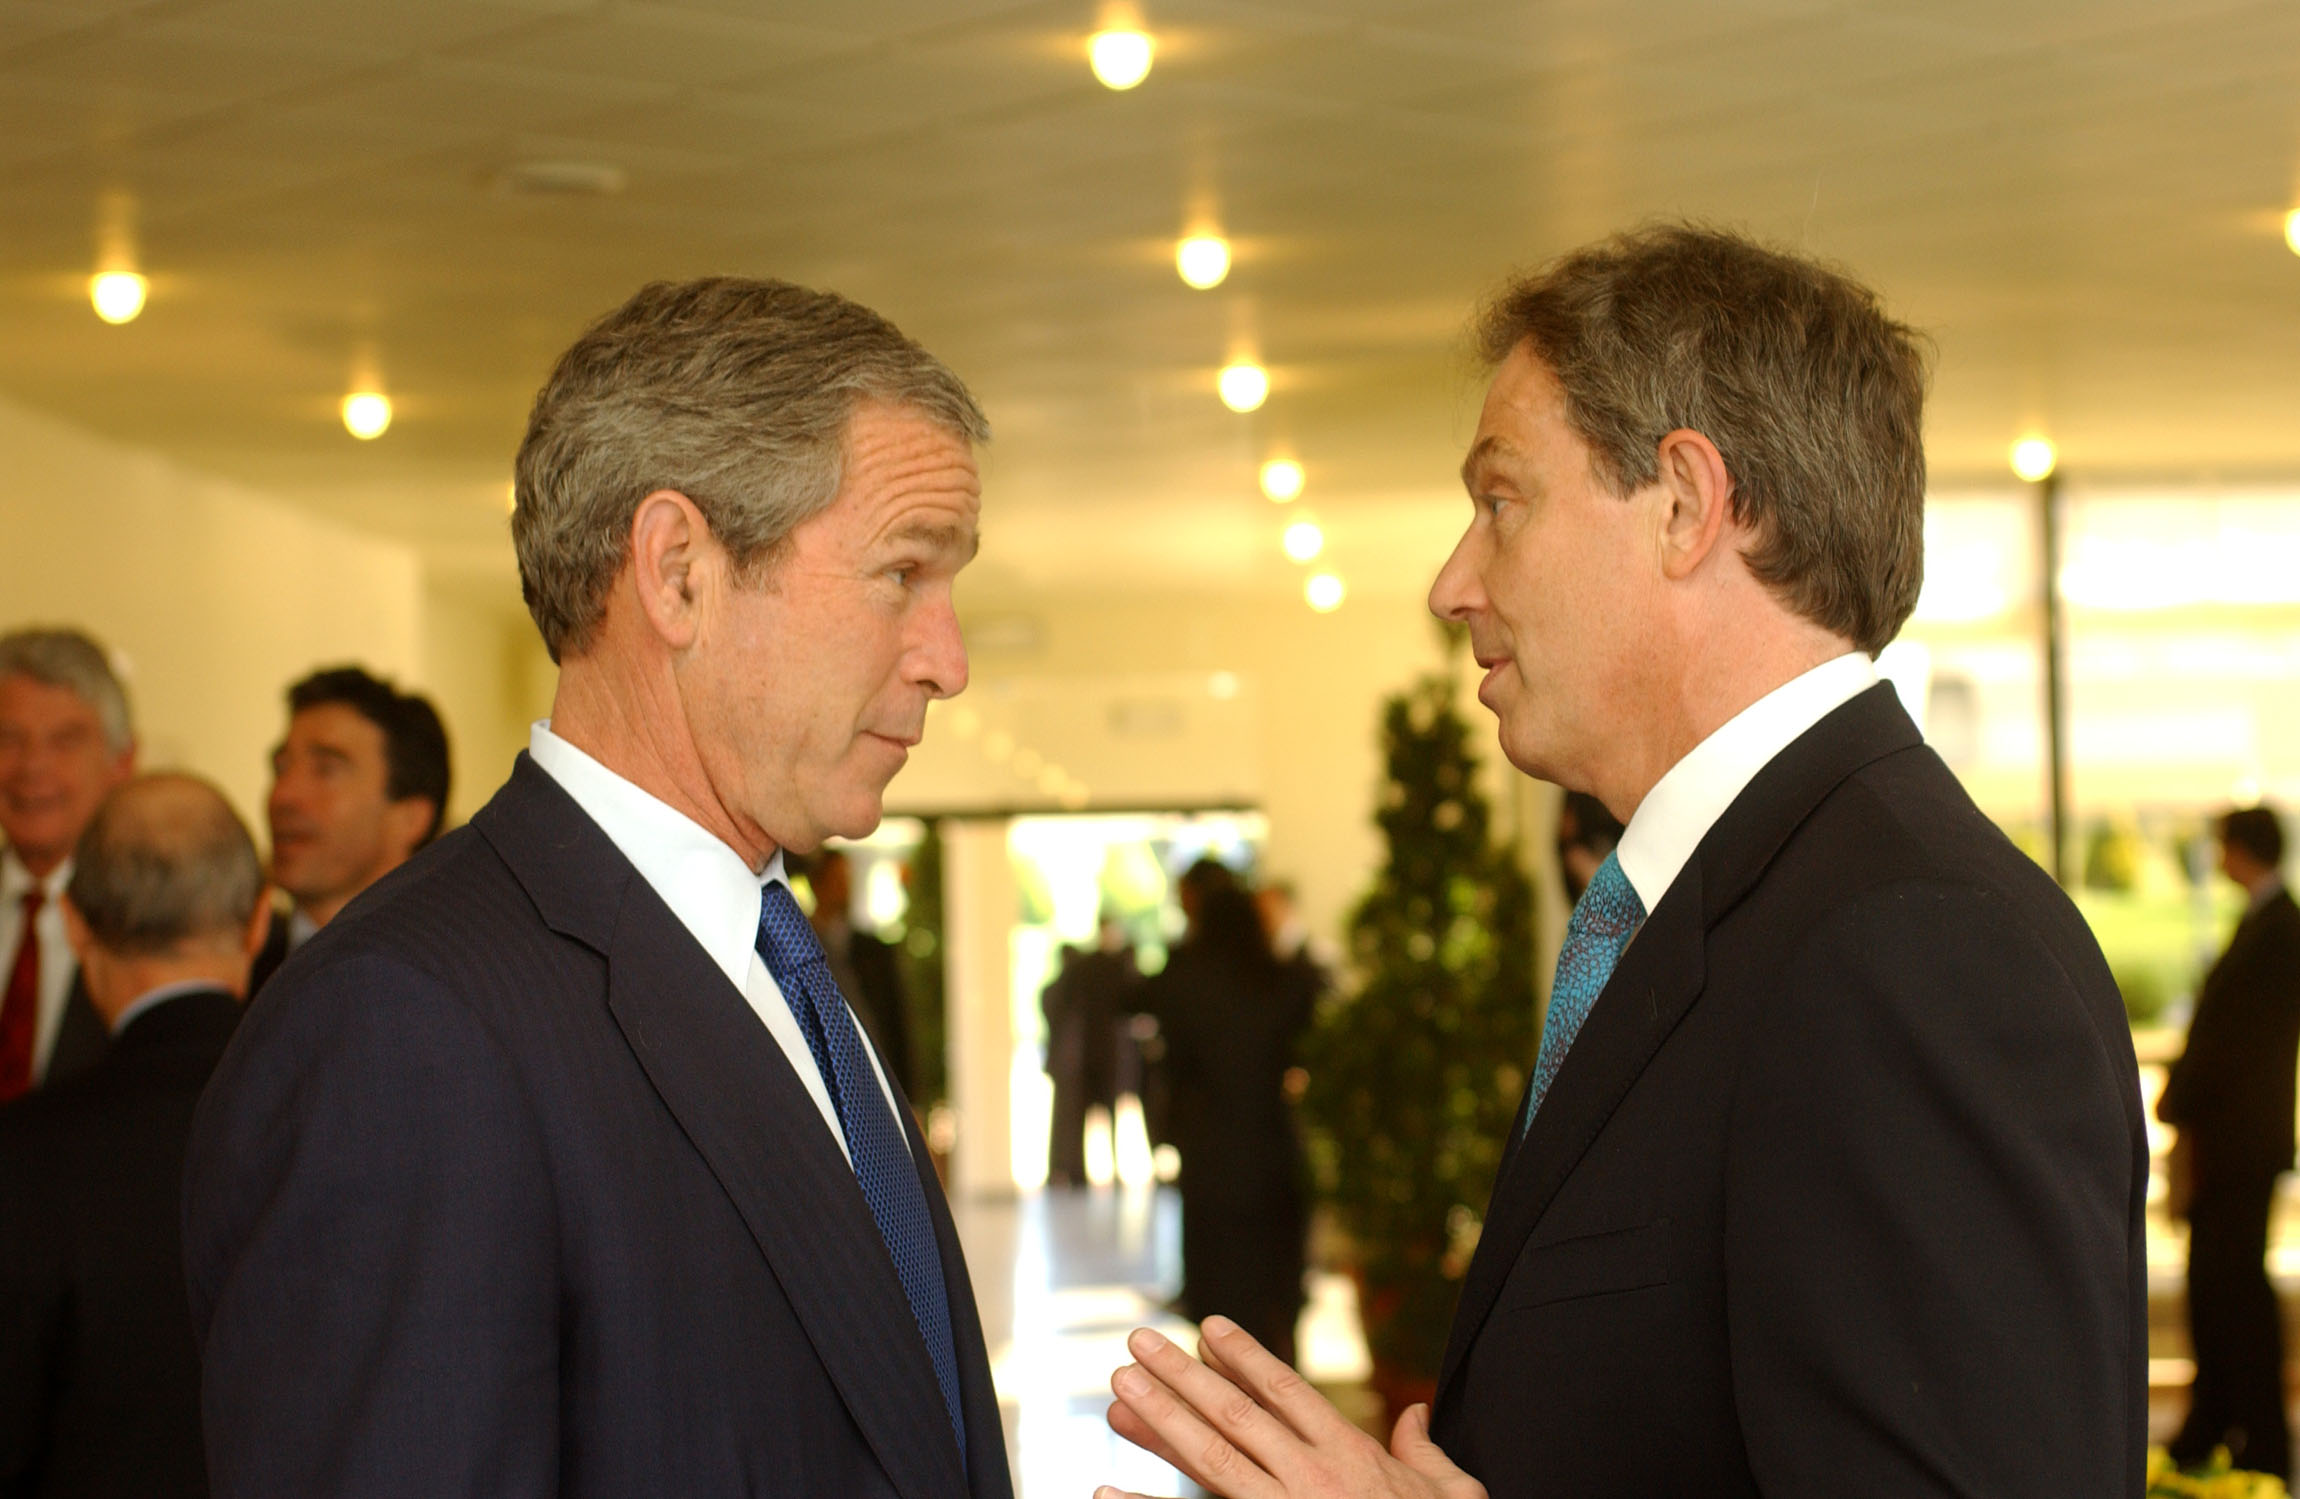 intelegere Tony Blair si George Bush